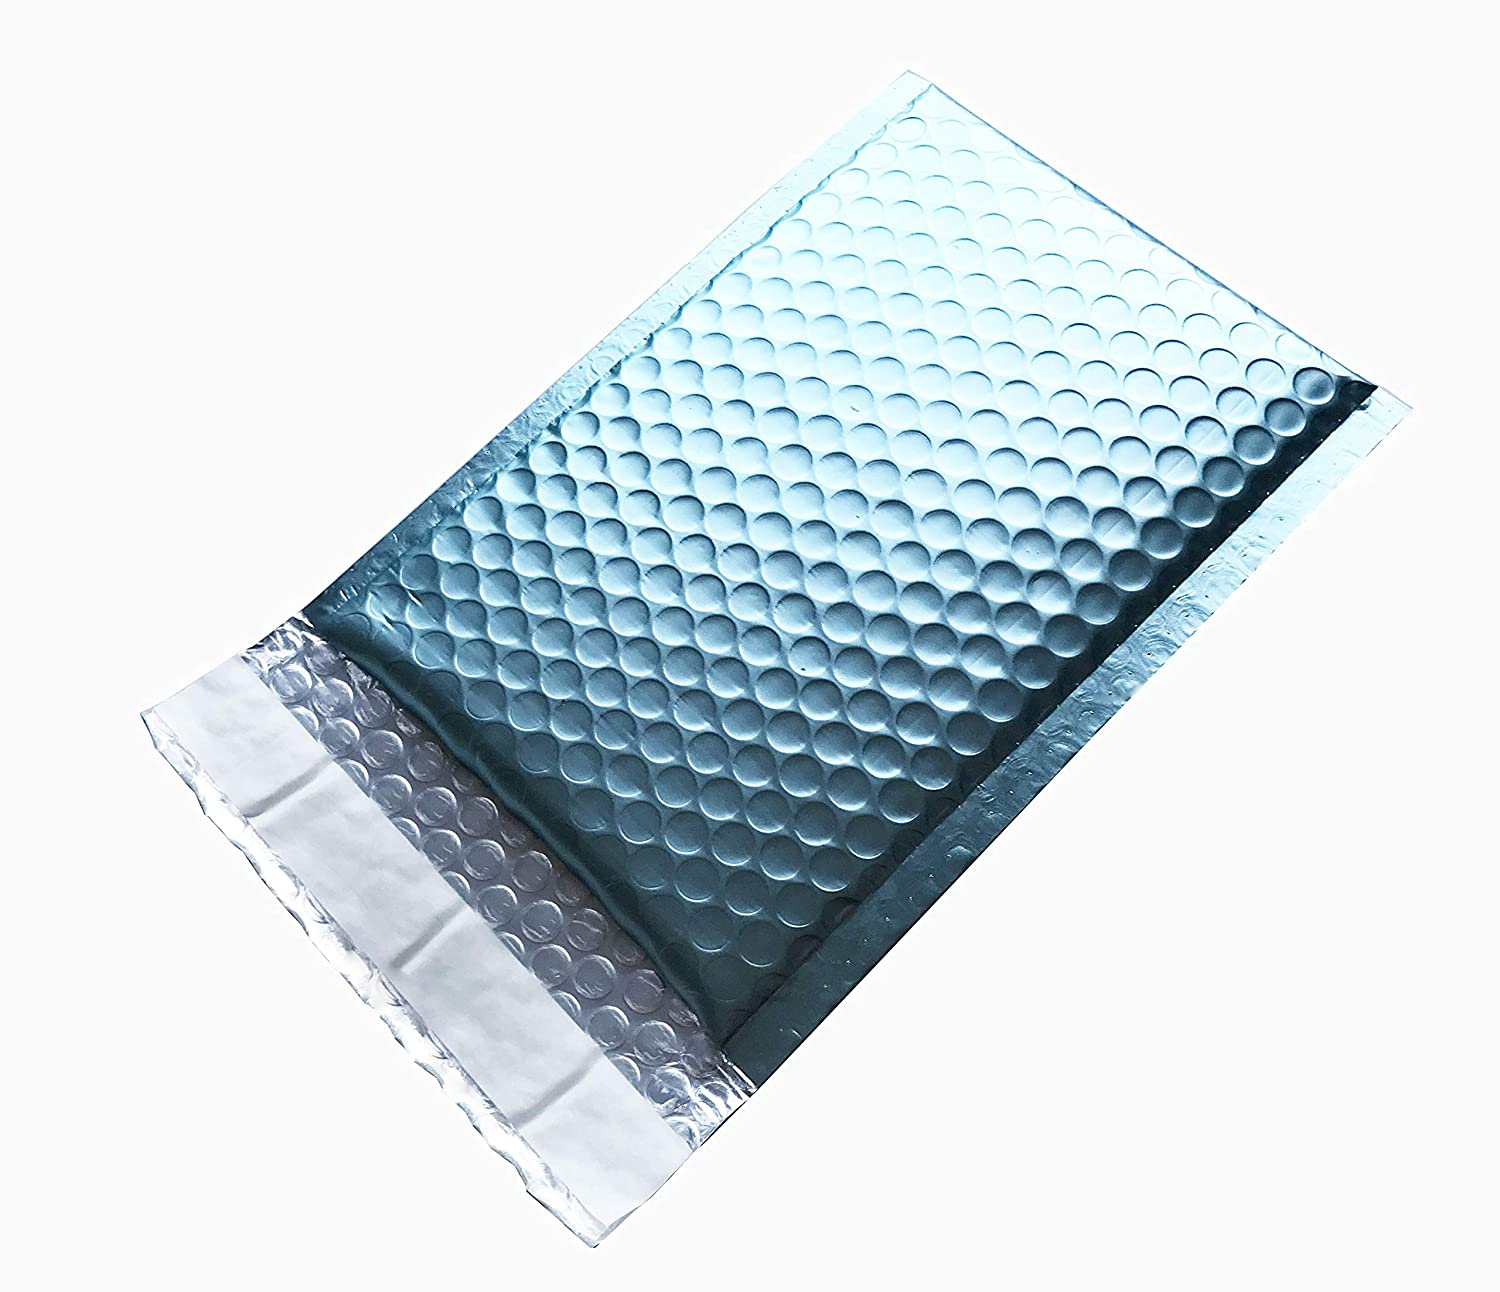 100 ProLine Matte Metallic Ice Blue Bubble Mailers 6x10 Inch Self Seal Padded Envelopes